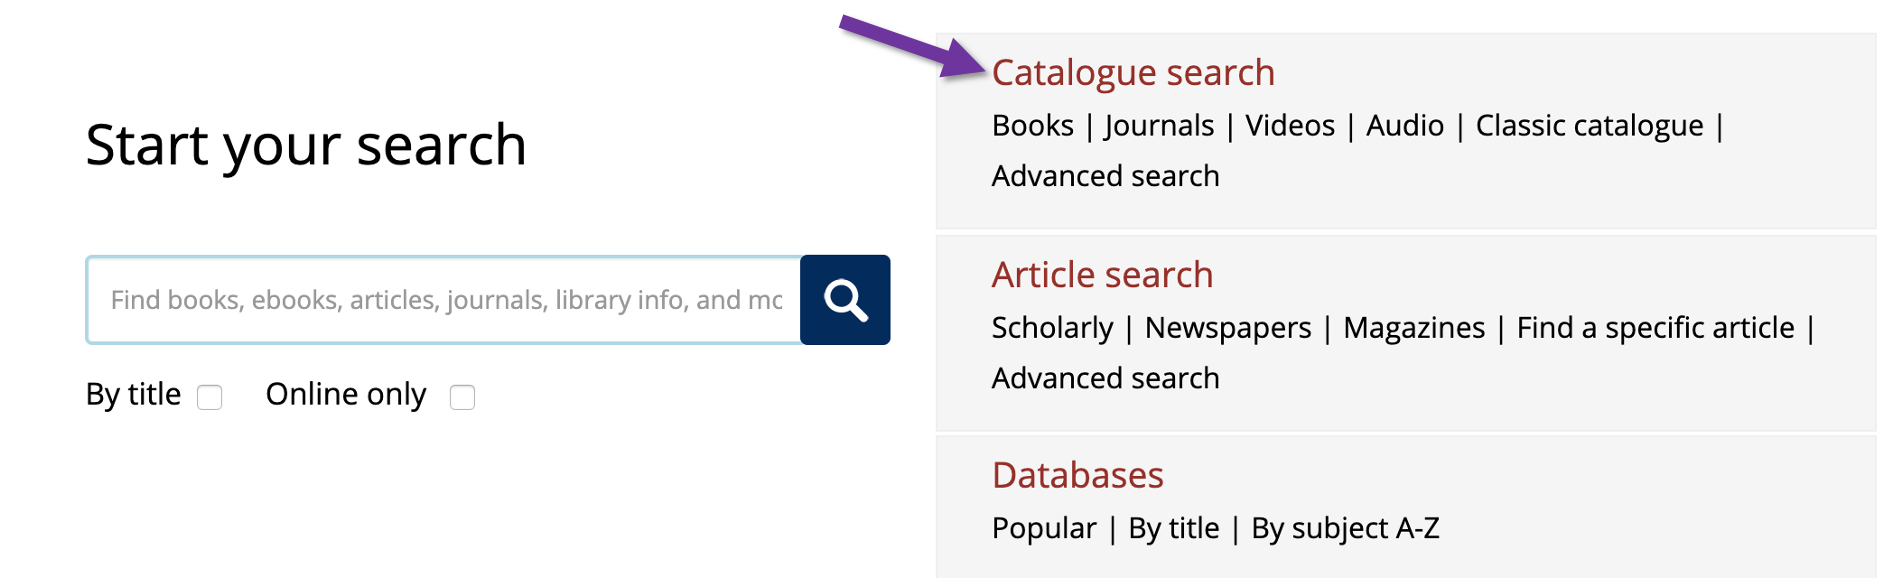 Screenshot of the university of Toronto libraries homepage with an arrow pointing to the catalogue search heading.